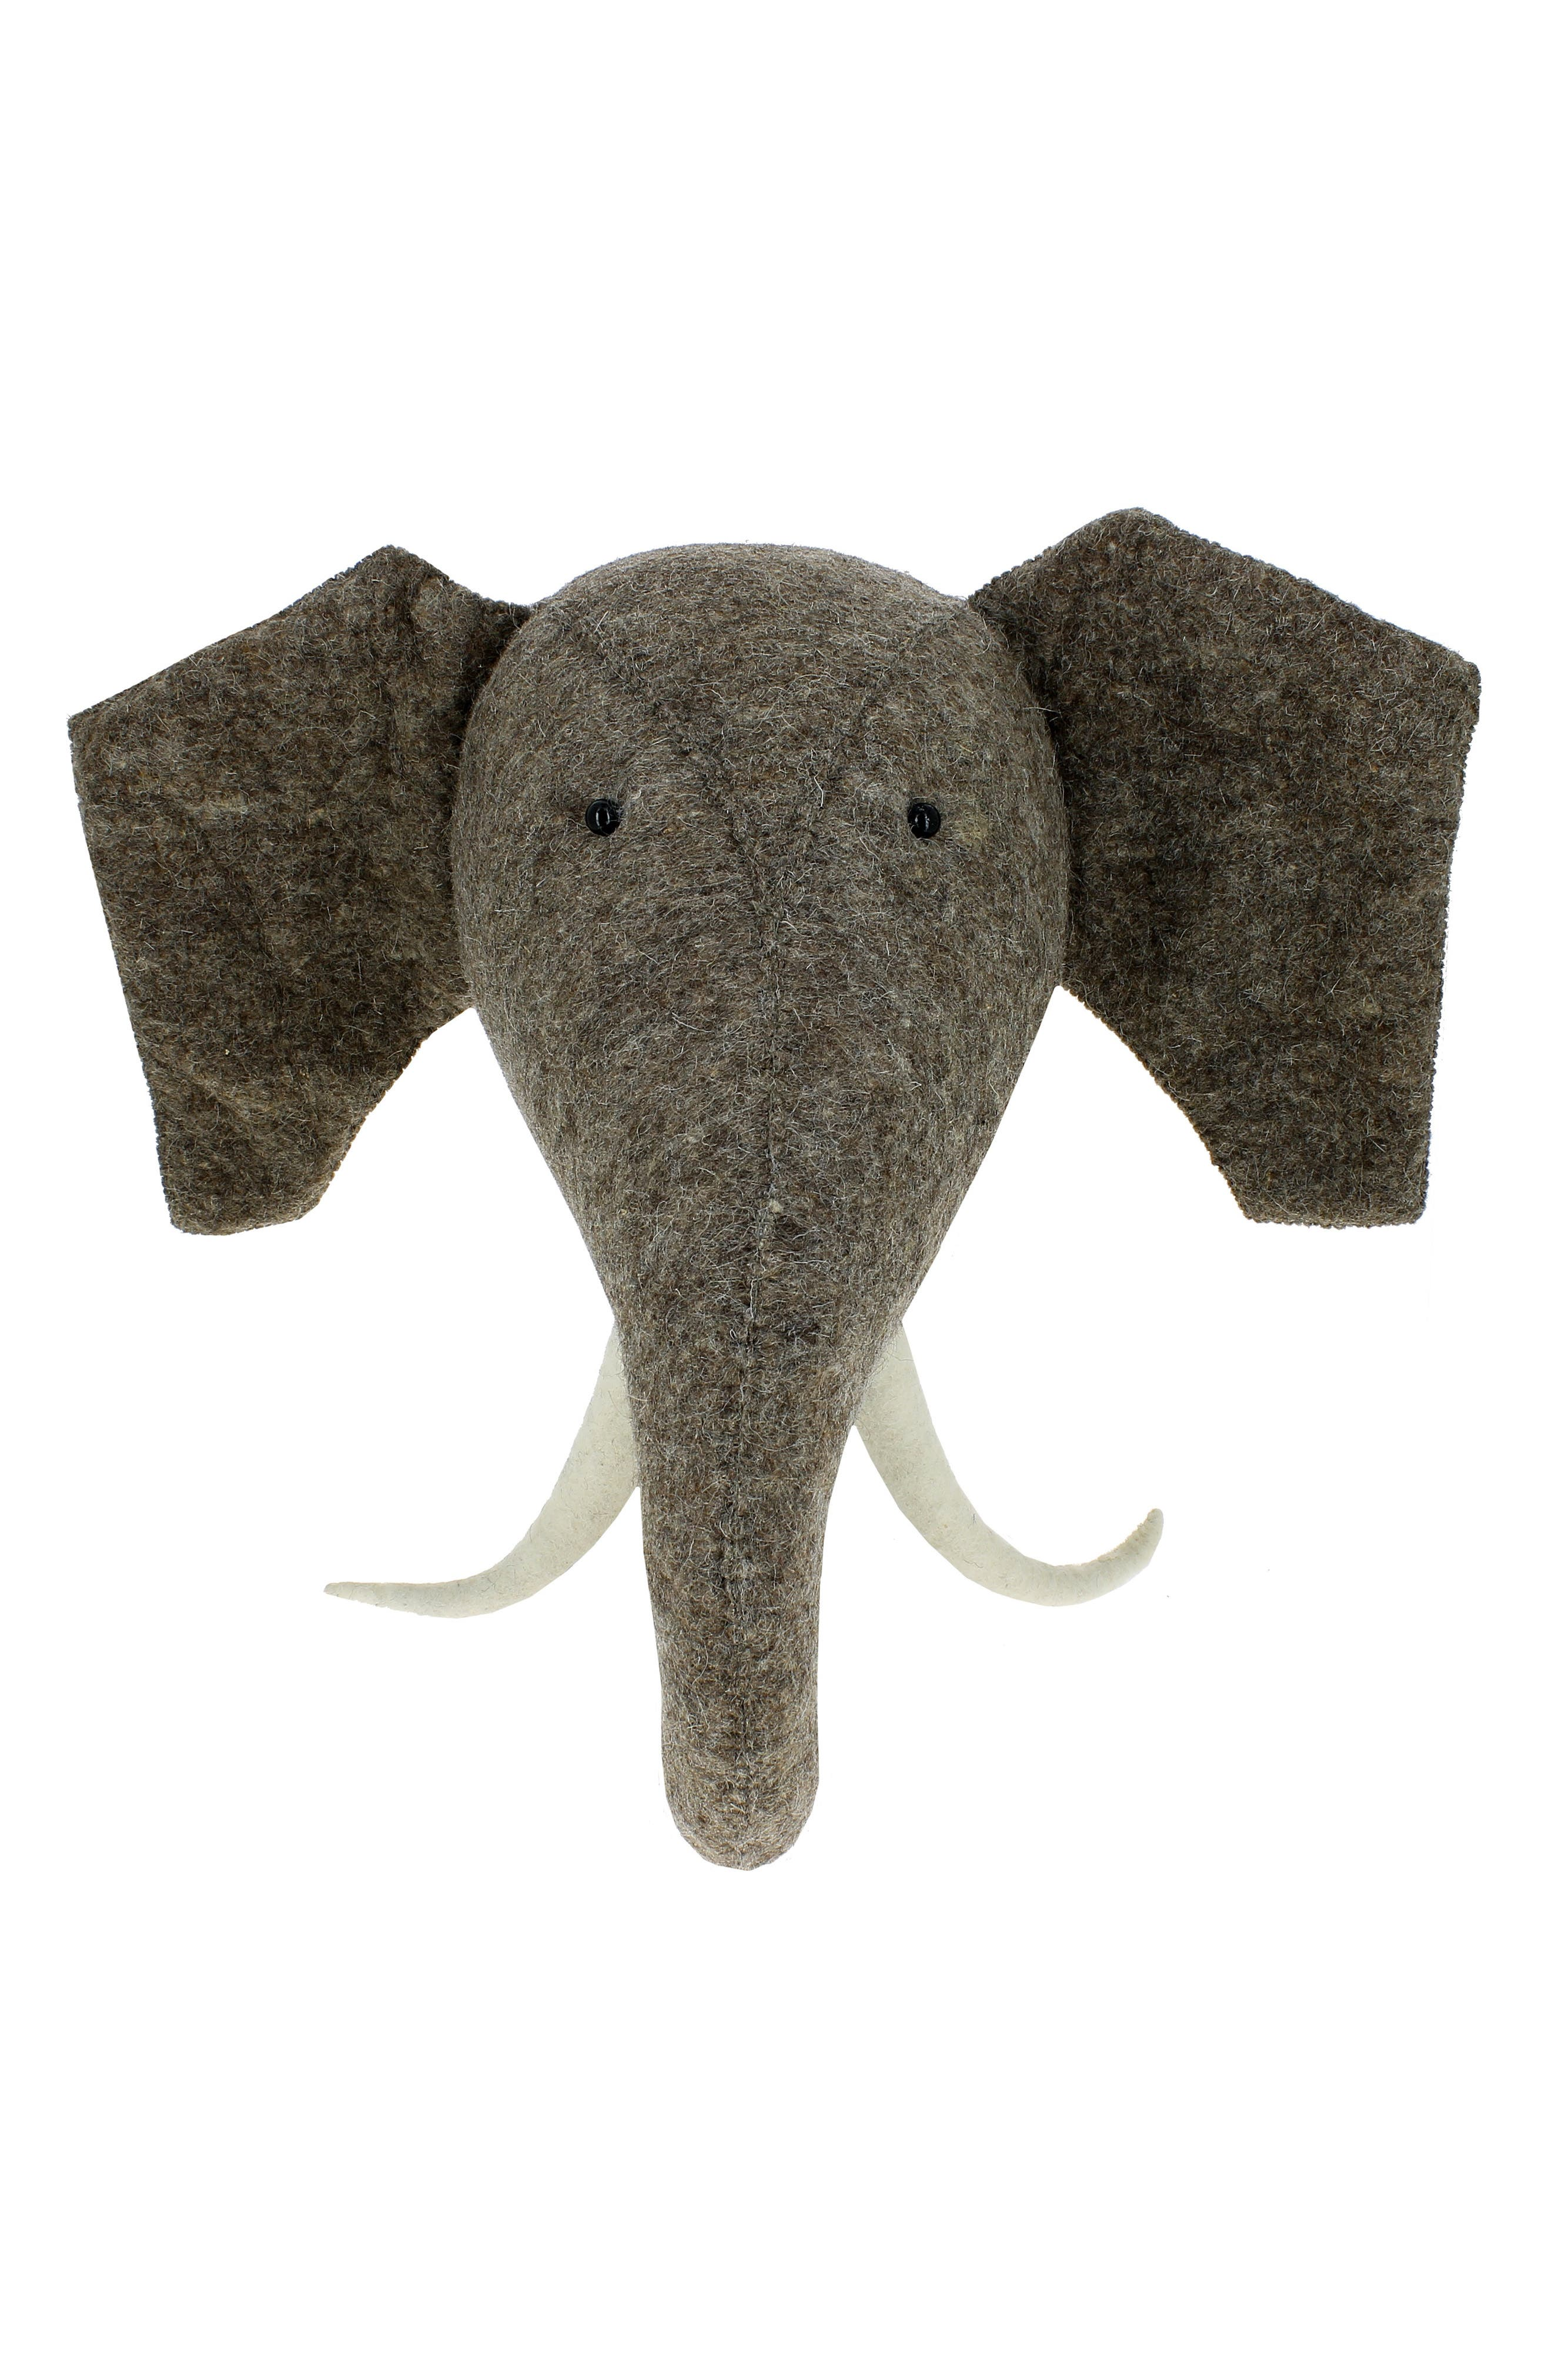 Fiona Walker Elephant Head with Tusks Wall Art